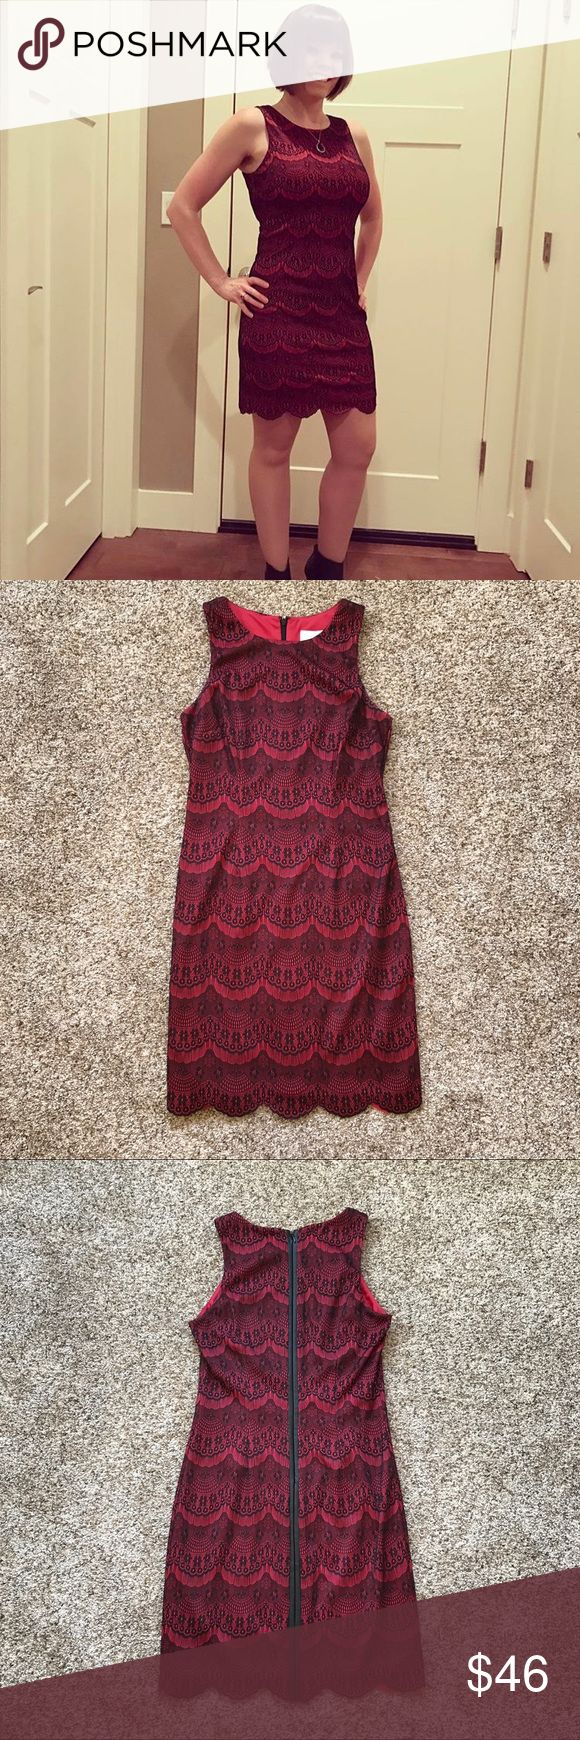 Jessica Simpson Red Black Mock Lace Dress Jessica Simpson Red and Black Mock Floral Lace Dress. The zipper appears to be the entire back, but it's only the top half of the stripe. Size 4. In excellent condition, worn once. Jessica Simpson Dresses Mini